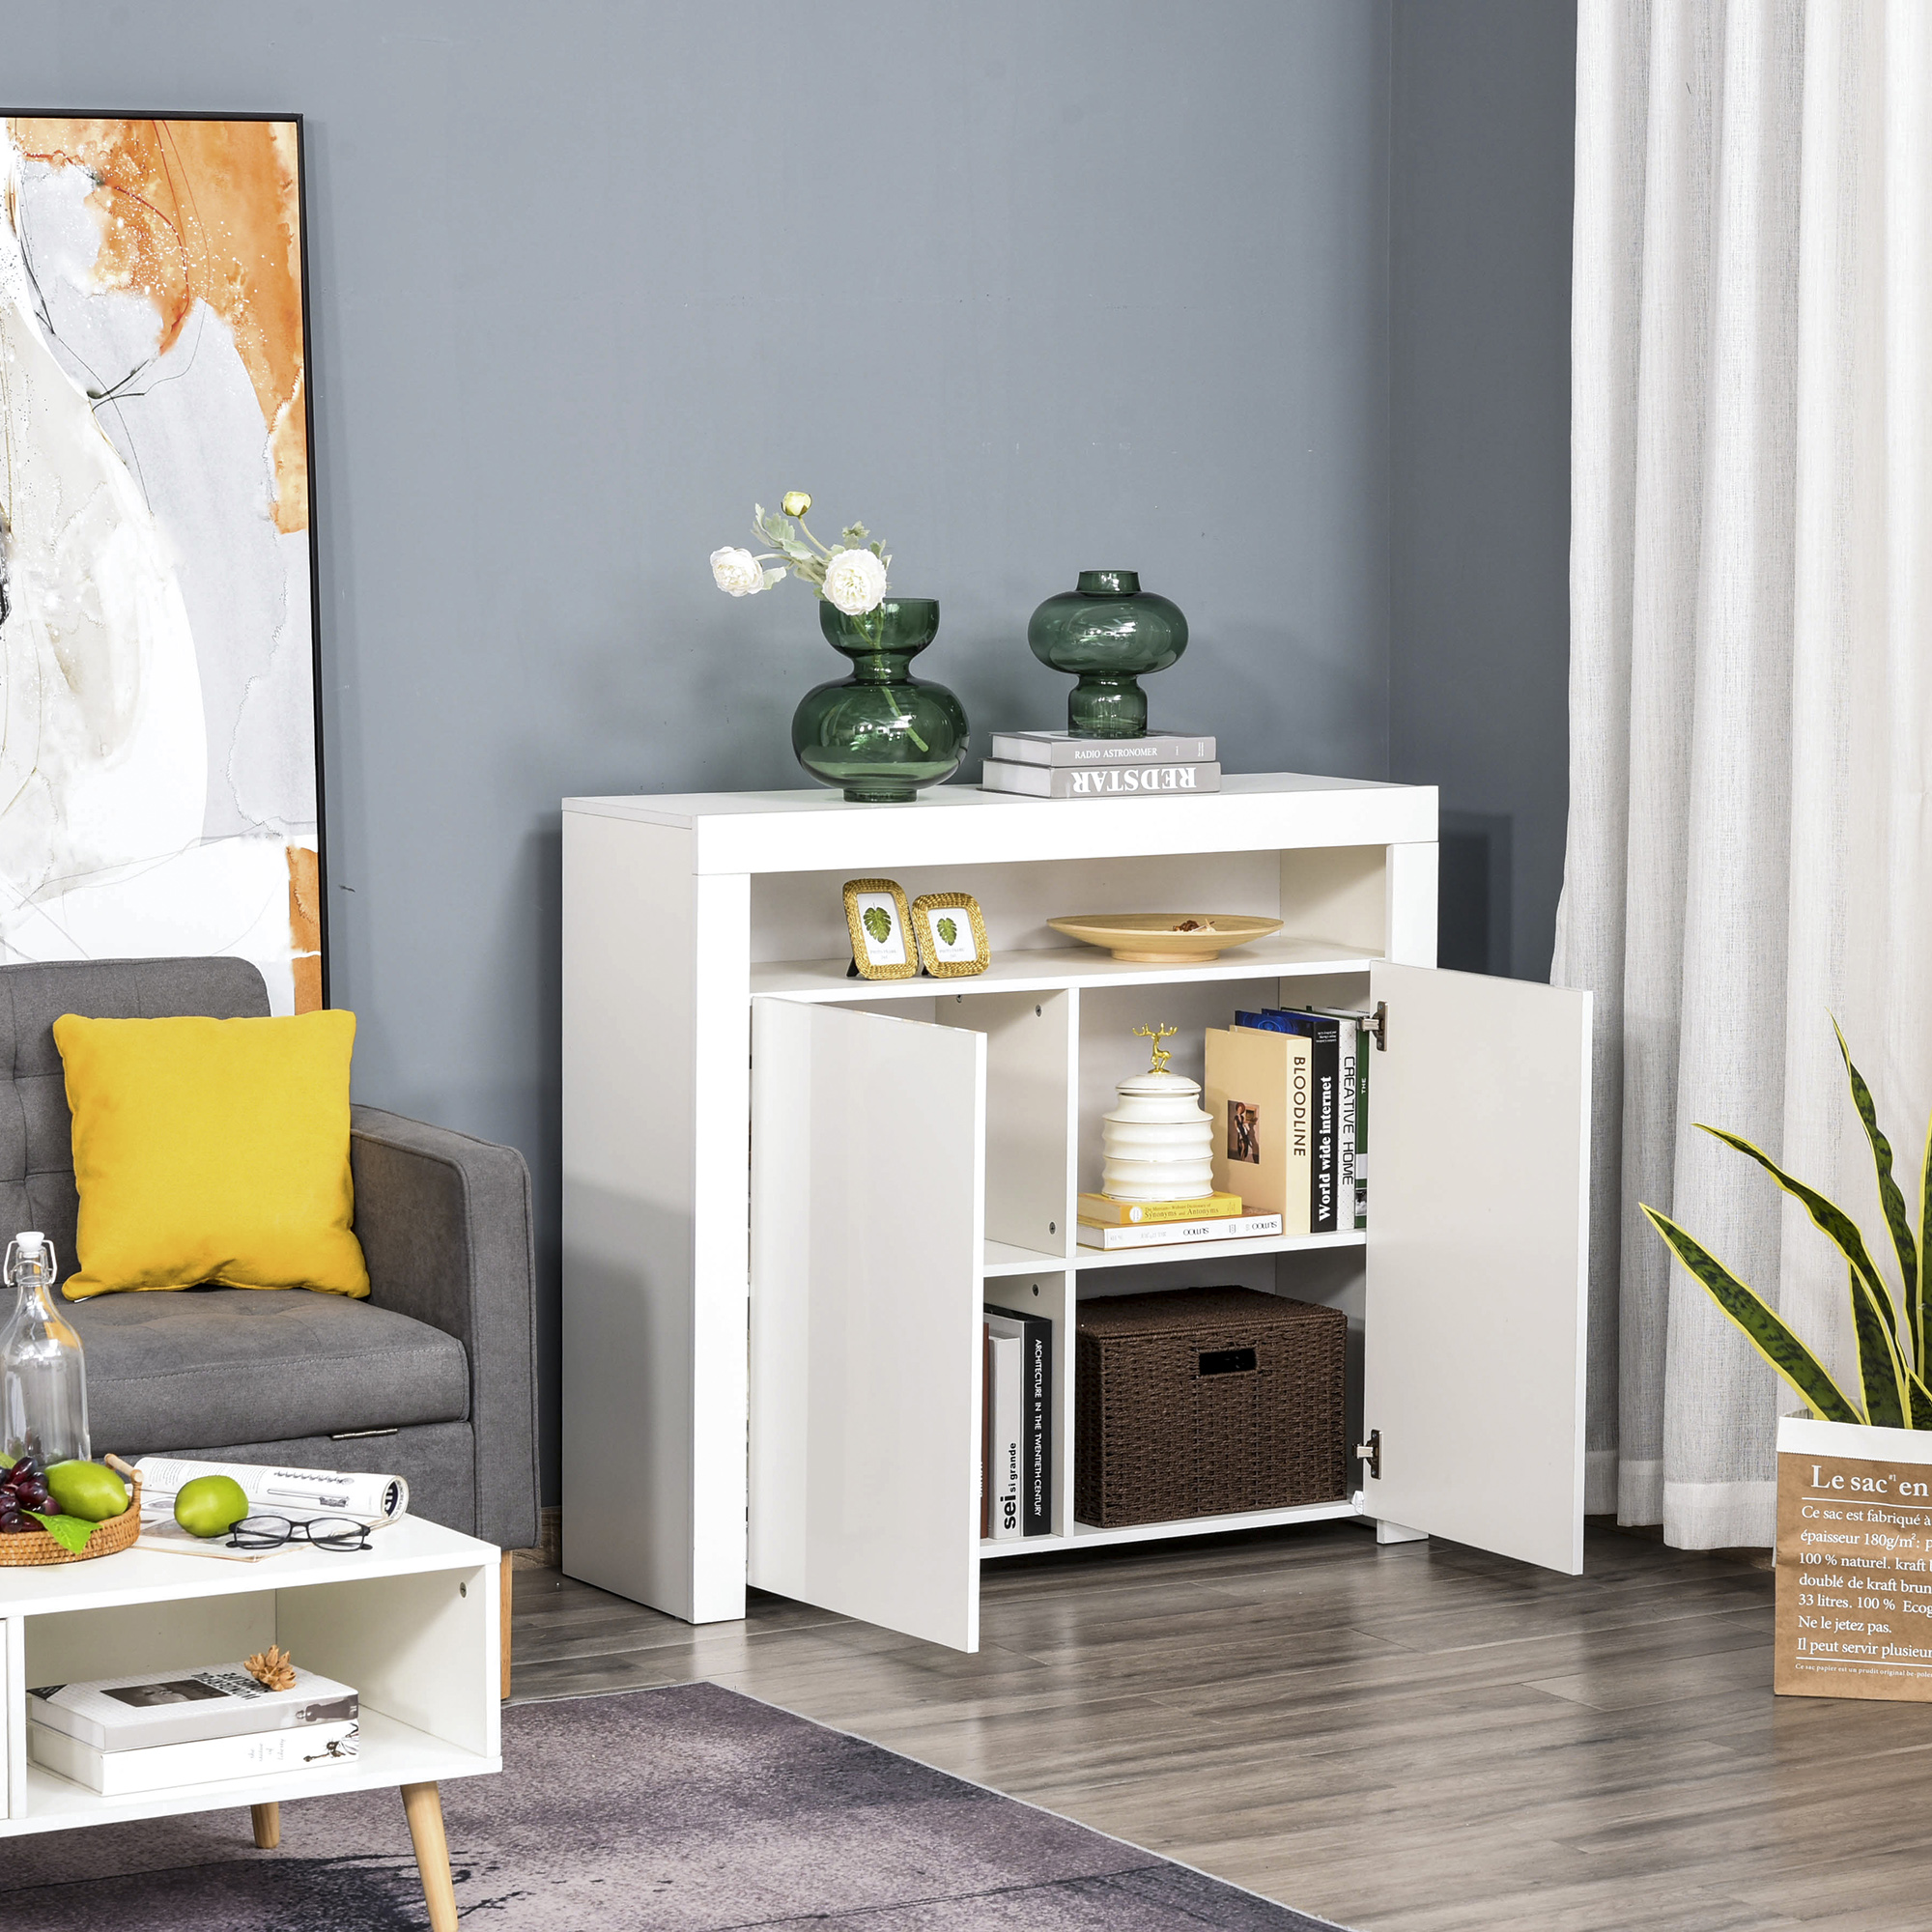 thumbnail 16 - High Gloss LED Cabinet Cupboard Sideboard Console with RGB Lighting